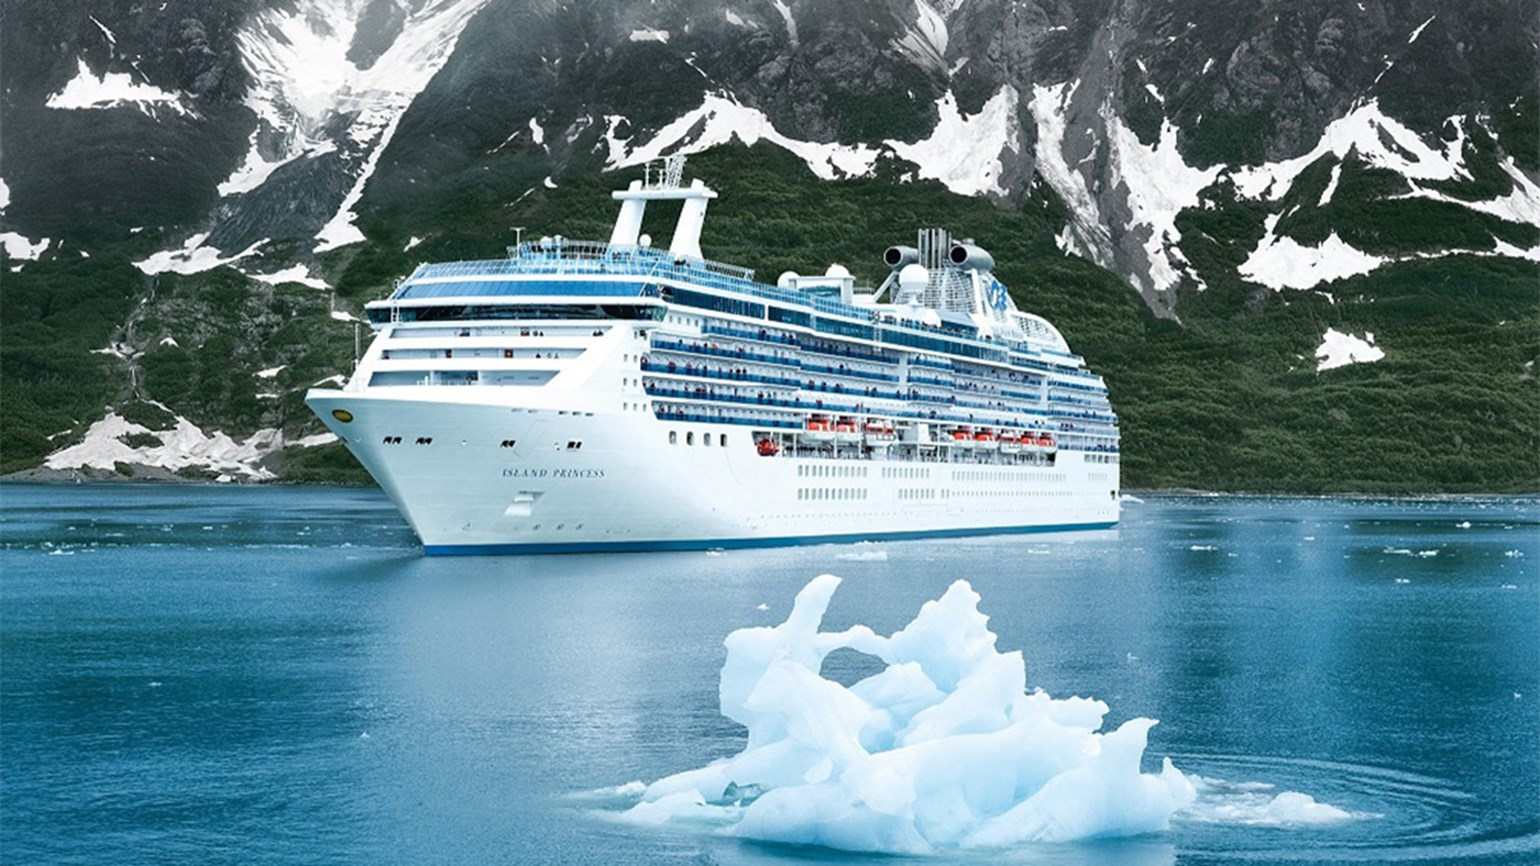 Princess adds Island Princess to list of Ocean Medallion ships